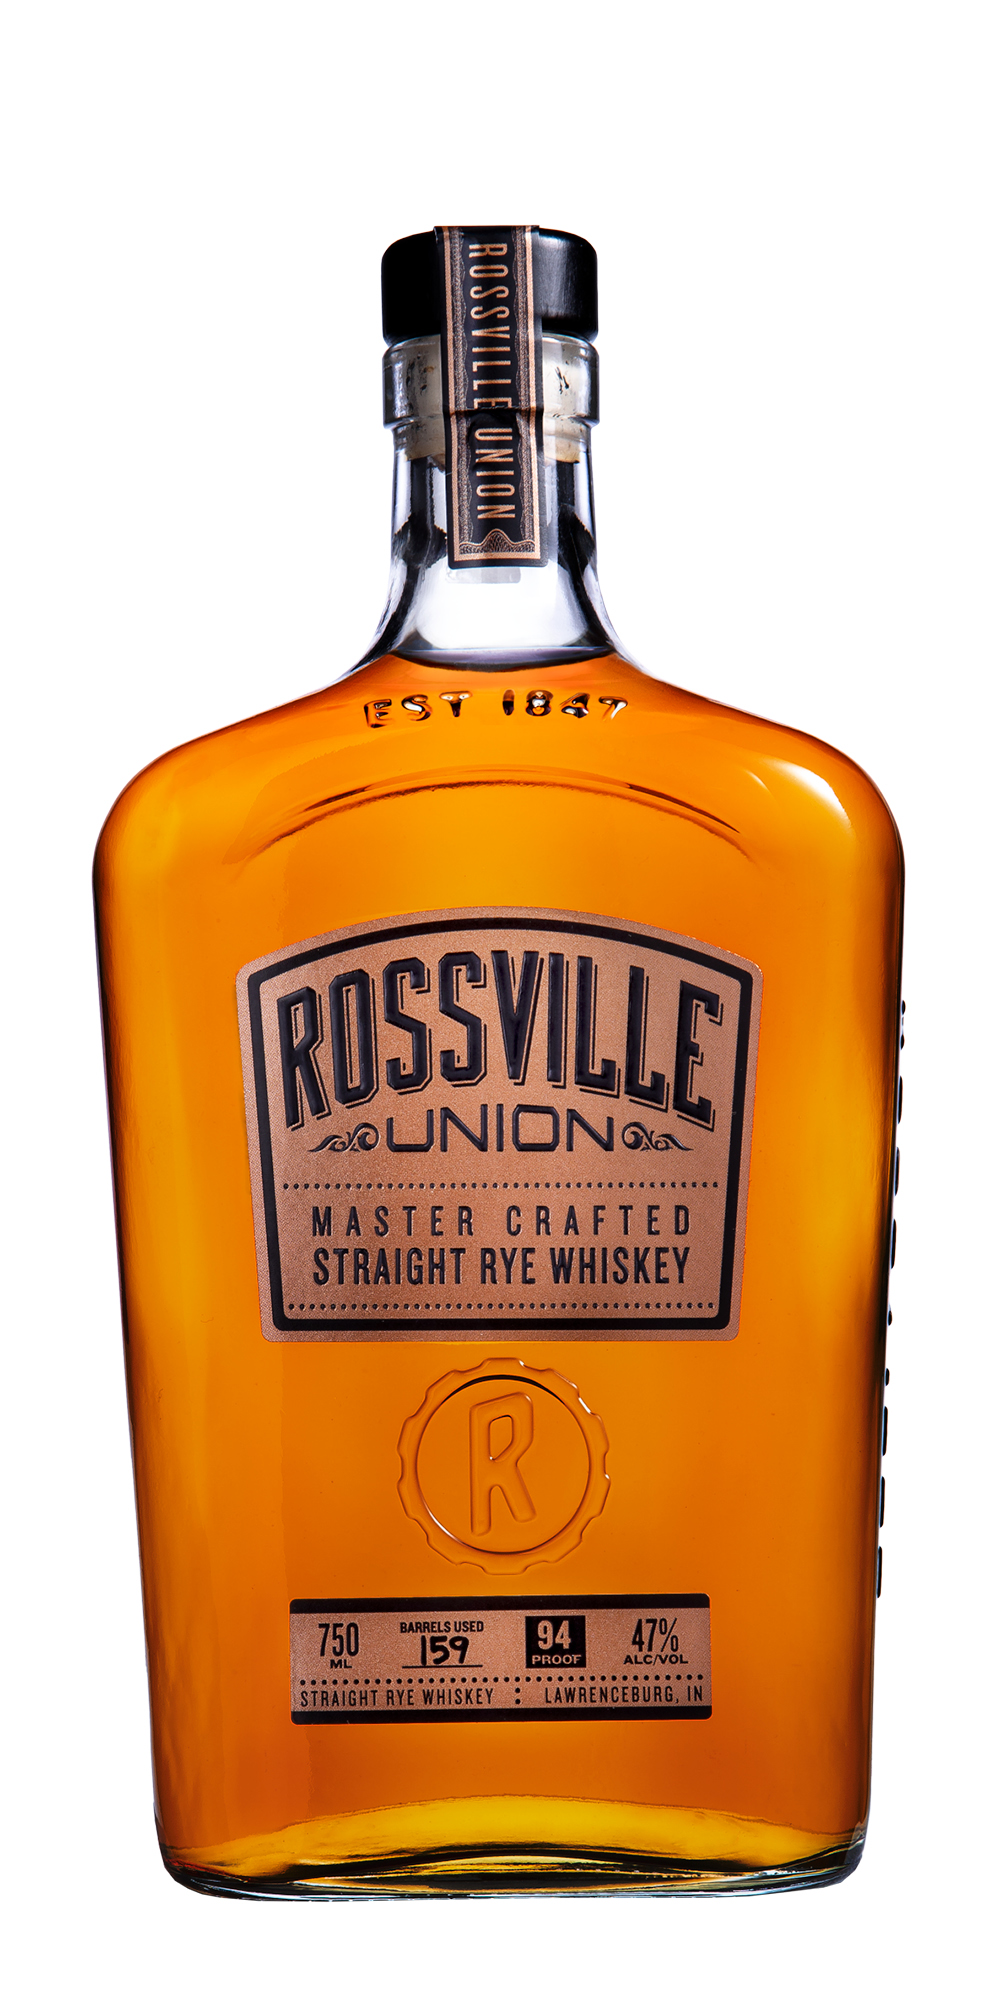 Rossville Union Master Crafted